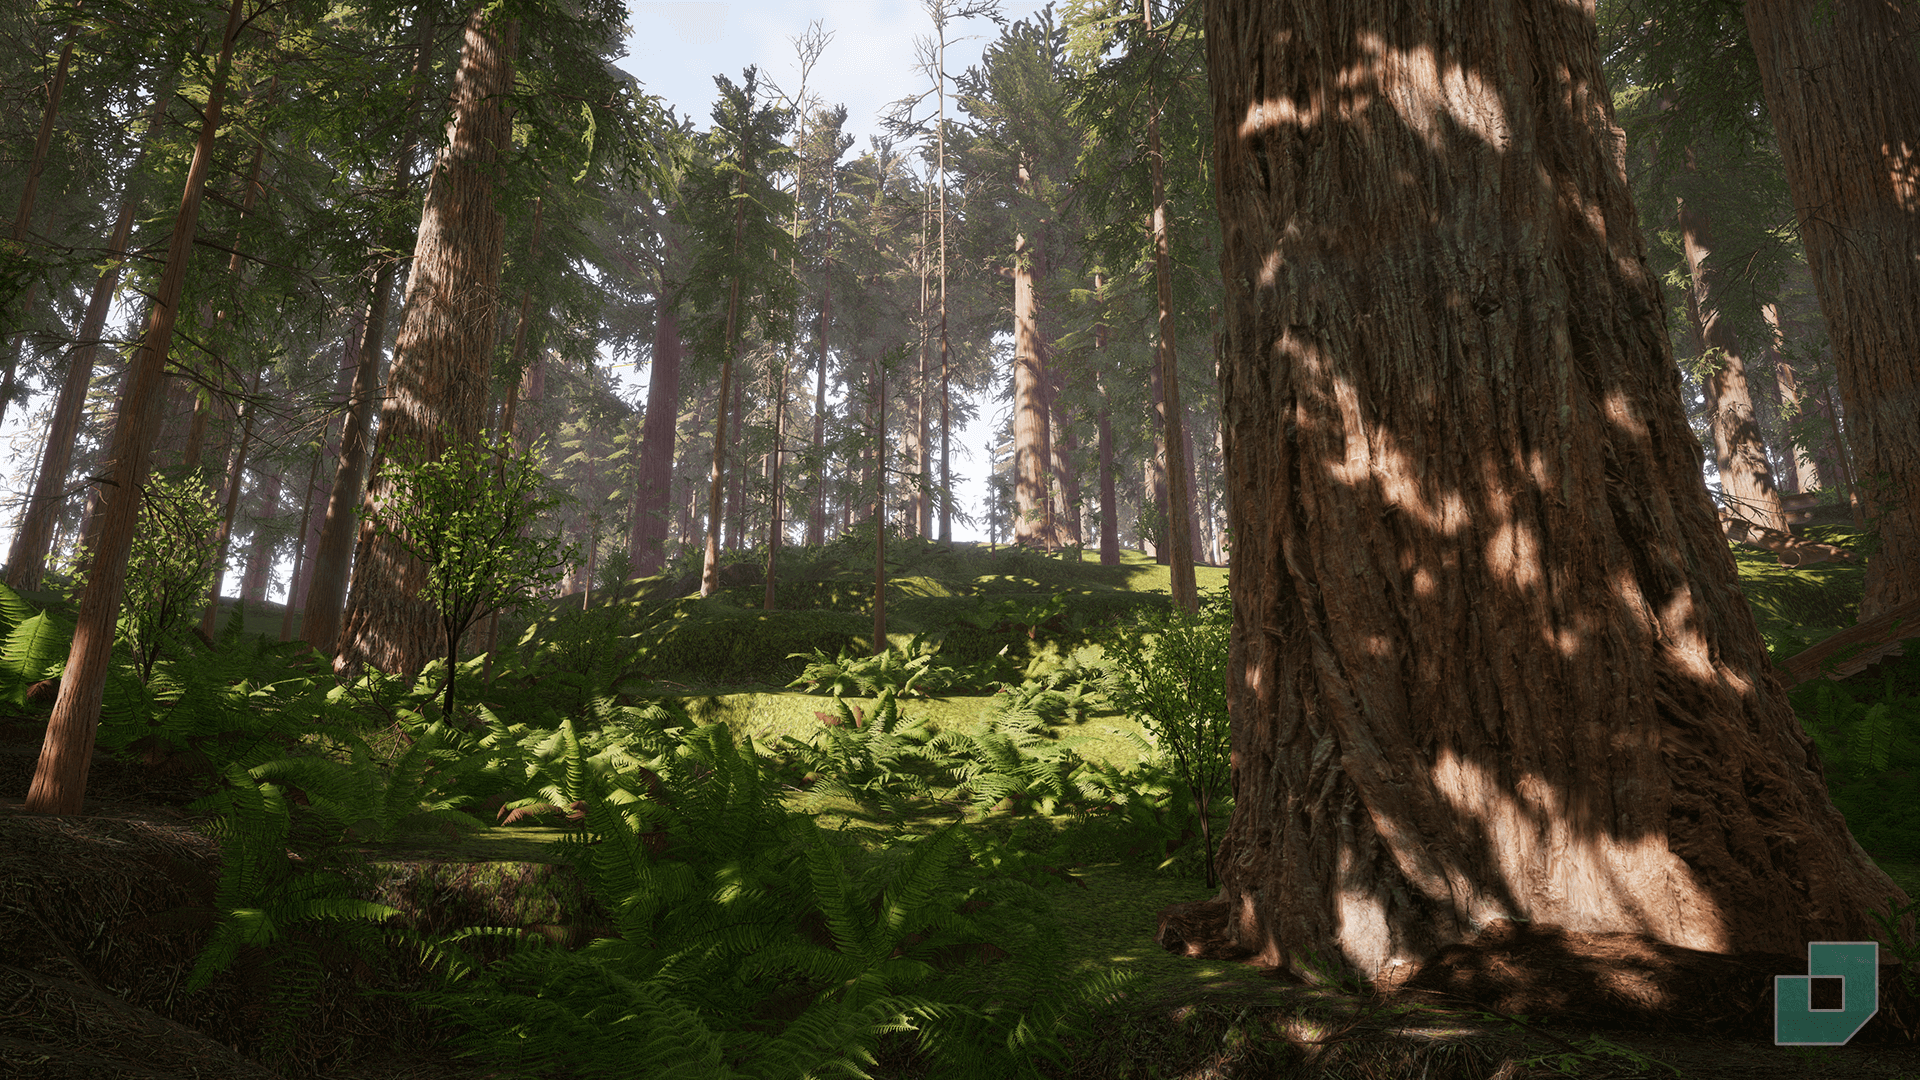 Redwood Forest by Dokyo in Environments - UE4 Marketplace